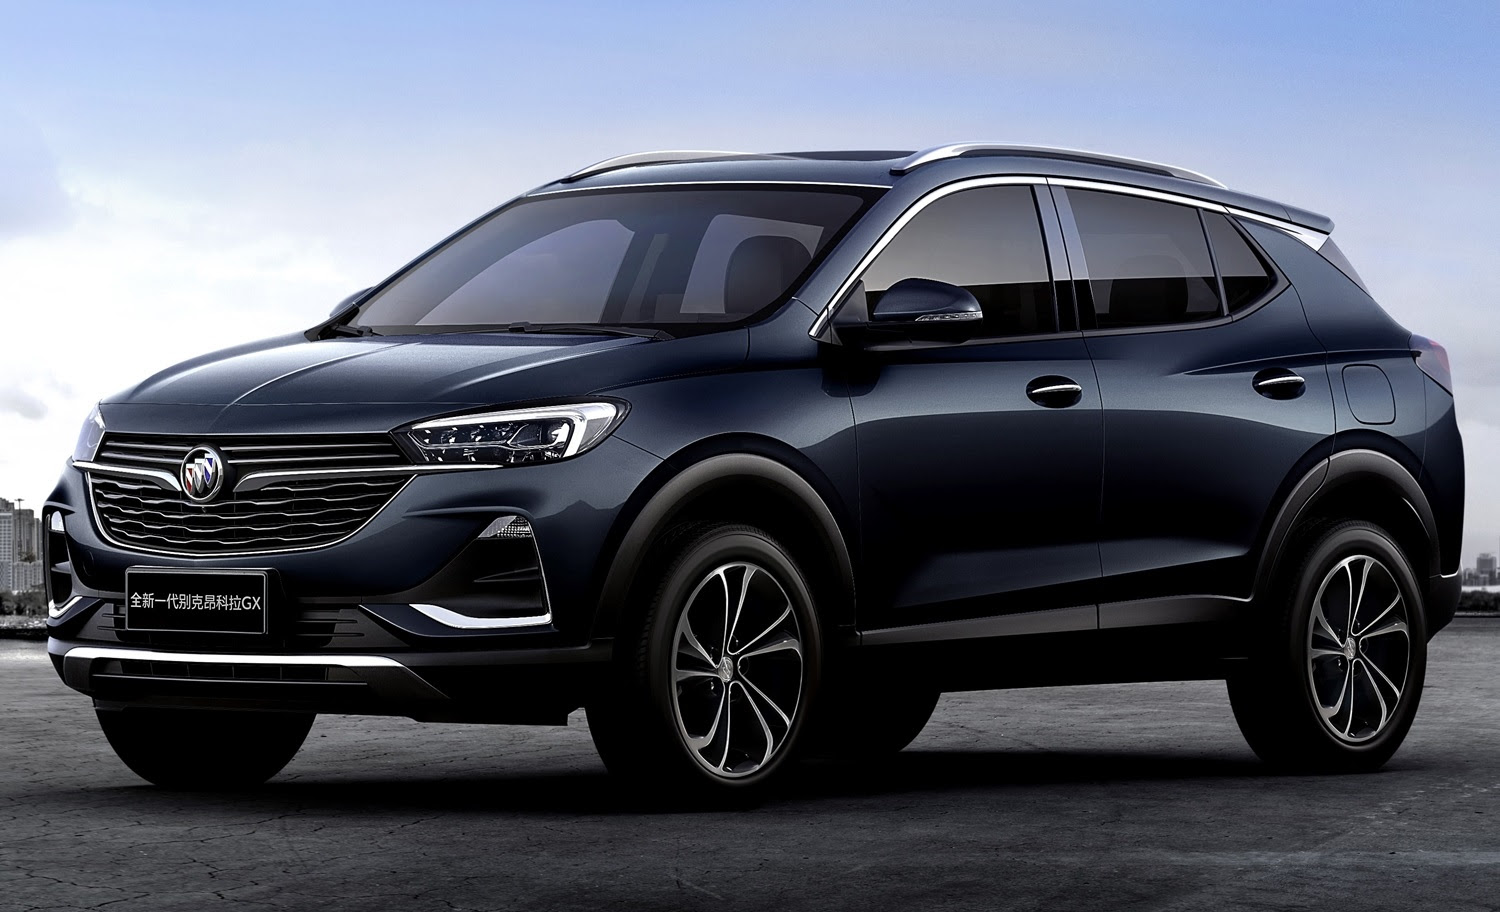 2020 buick encore gx to offer headup display  gm authority